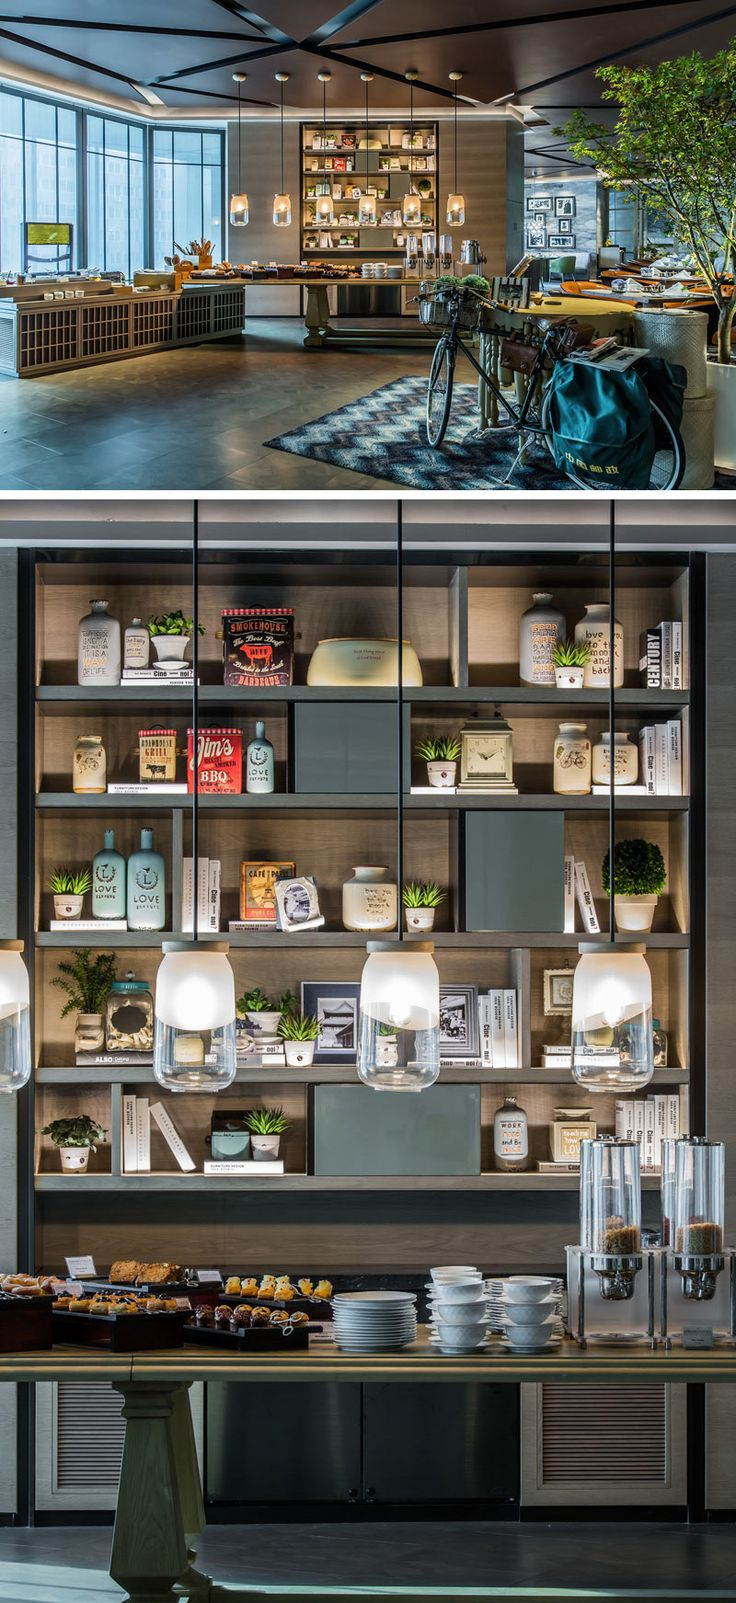 In this modern hotel restaurant, jar-like pendant lights hang above the self-serve counter located in front of a bookcase, that's filled with recipe books and trinkets reminiscent of a home kitchen.